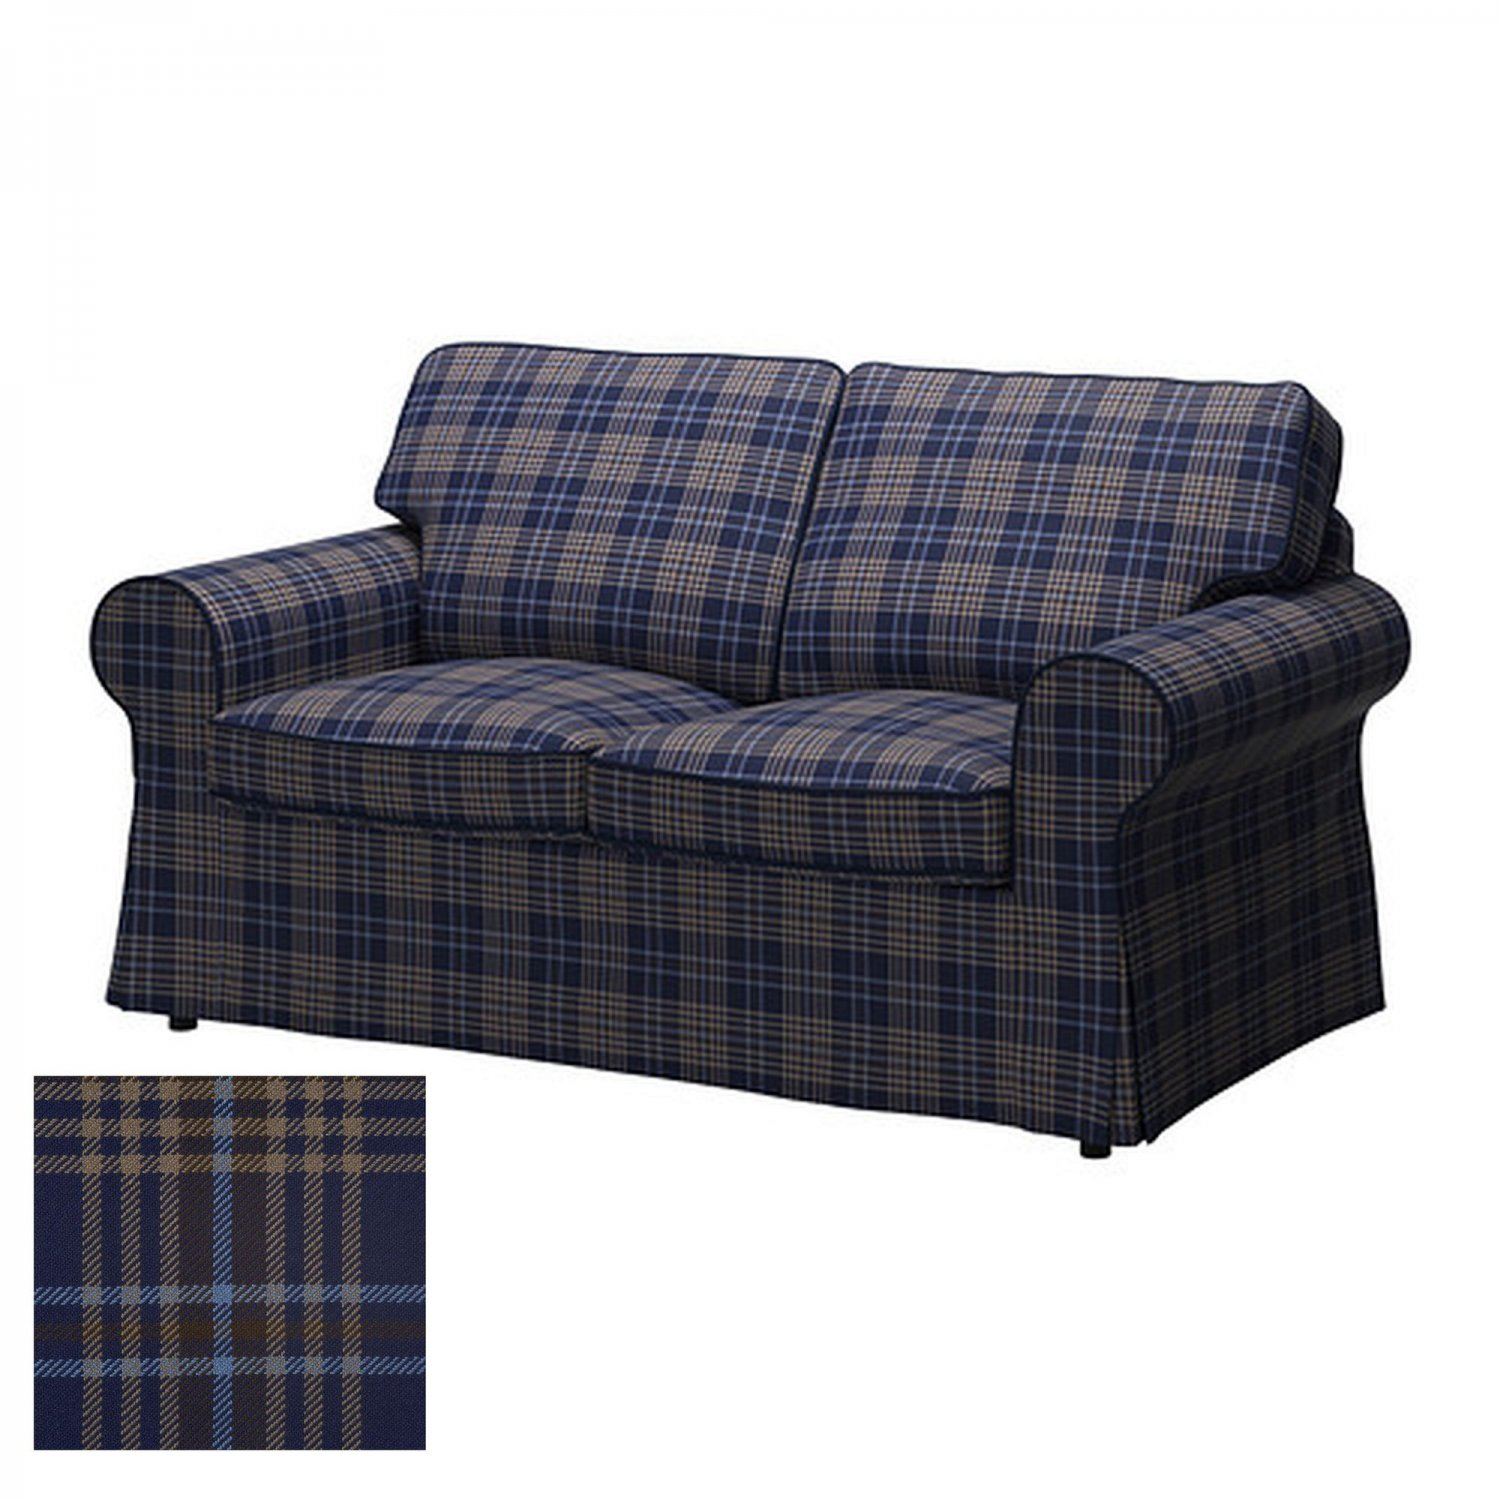 Ikea ektorp 2 seat loveseat sofa cover slipcover rutna multi plaid blue Blue loveseat slipcover